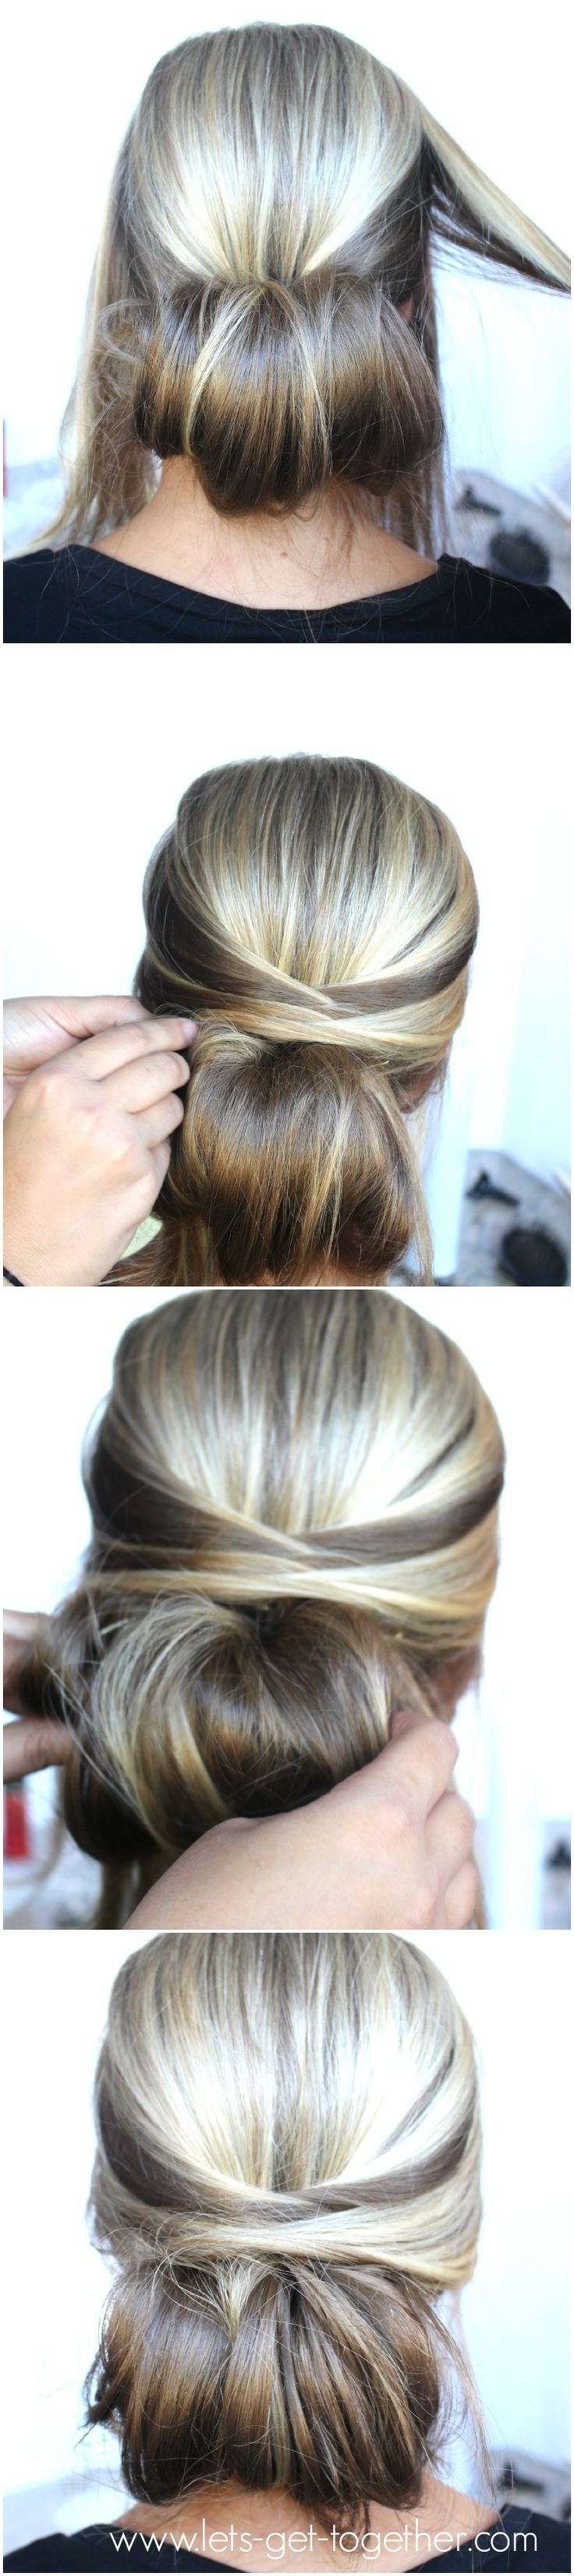 Step by step hairdo how-to! Get the styling products to rock this updo at Walgreens.com.